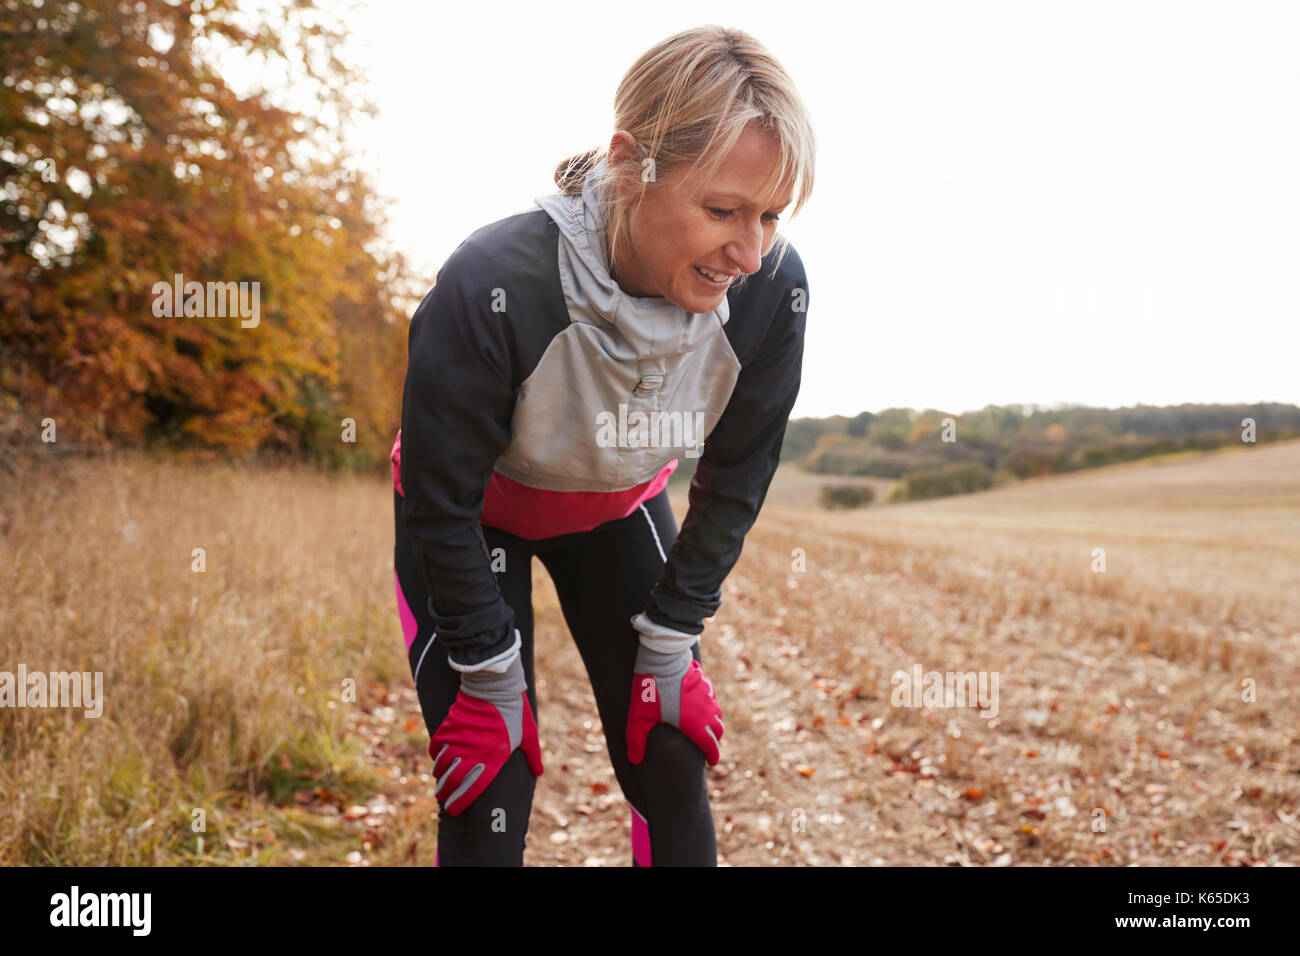 Mature Female Runner Pausing For Breath During Exercise In Woods - Stock Image